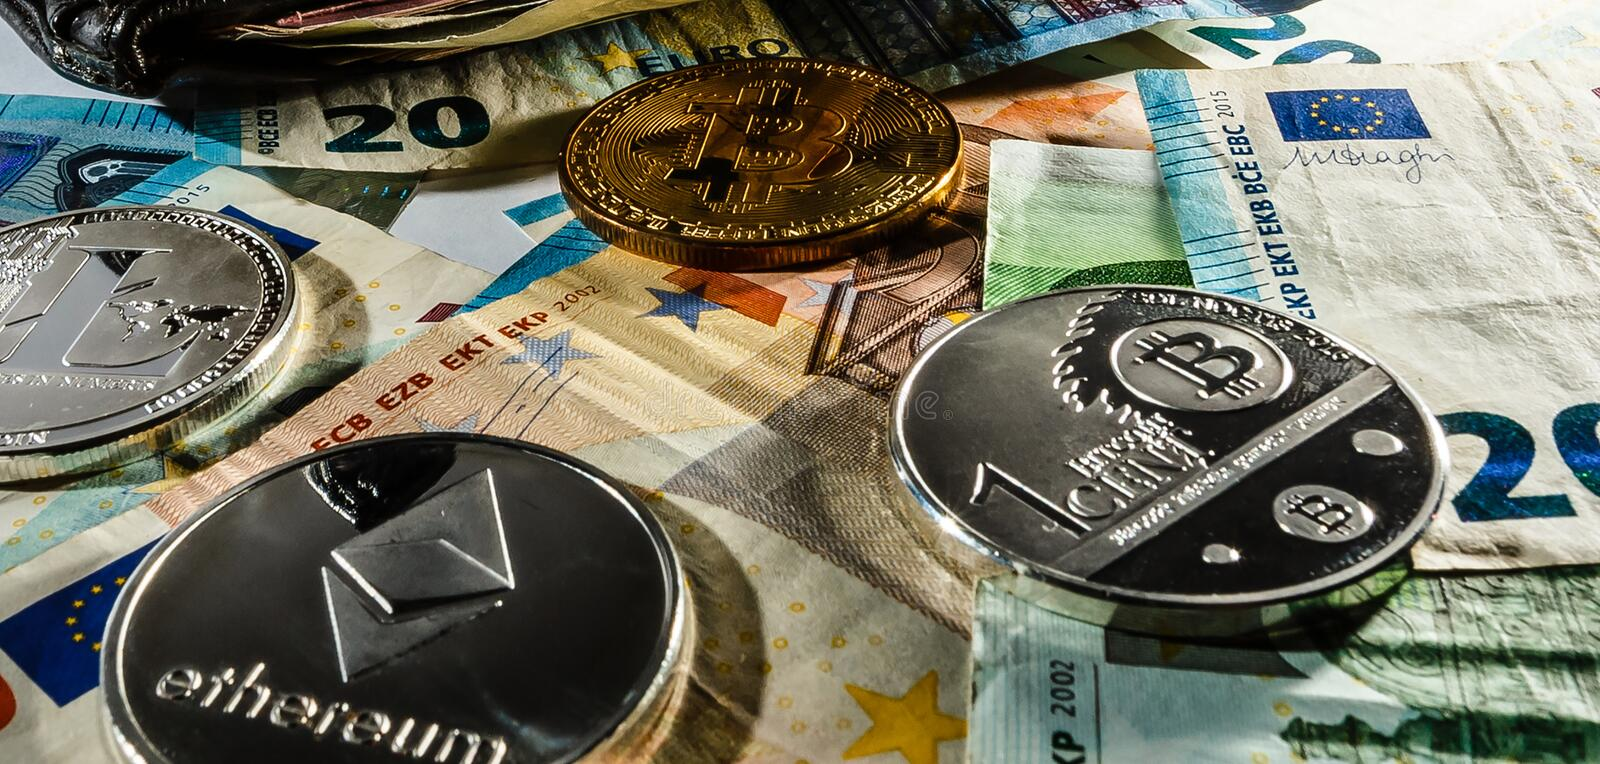 Financial concept with physical bitcoin and ethereum over a leather wallet with euro bills inside stock photography